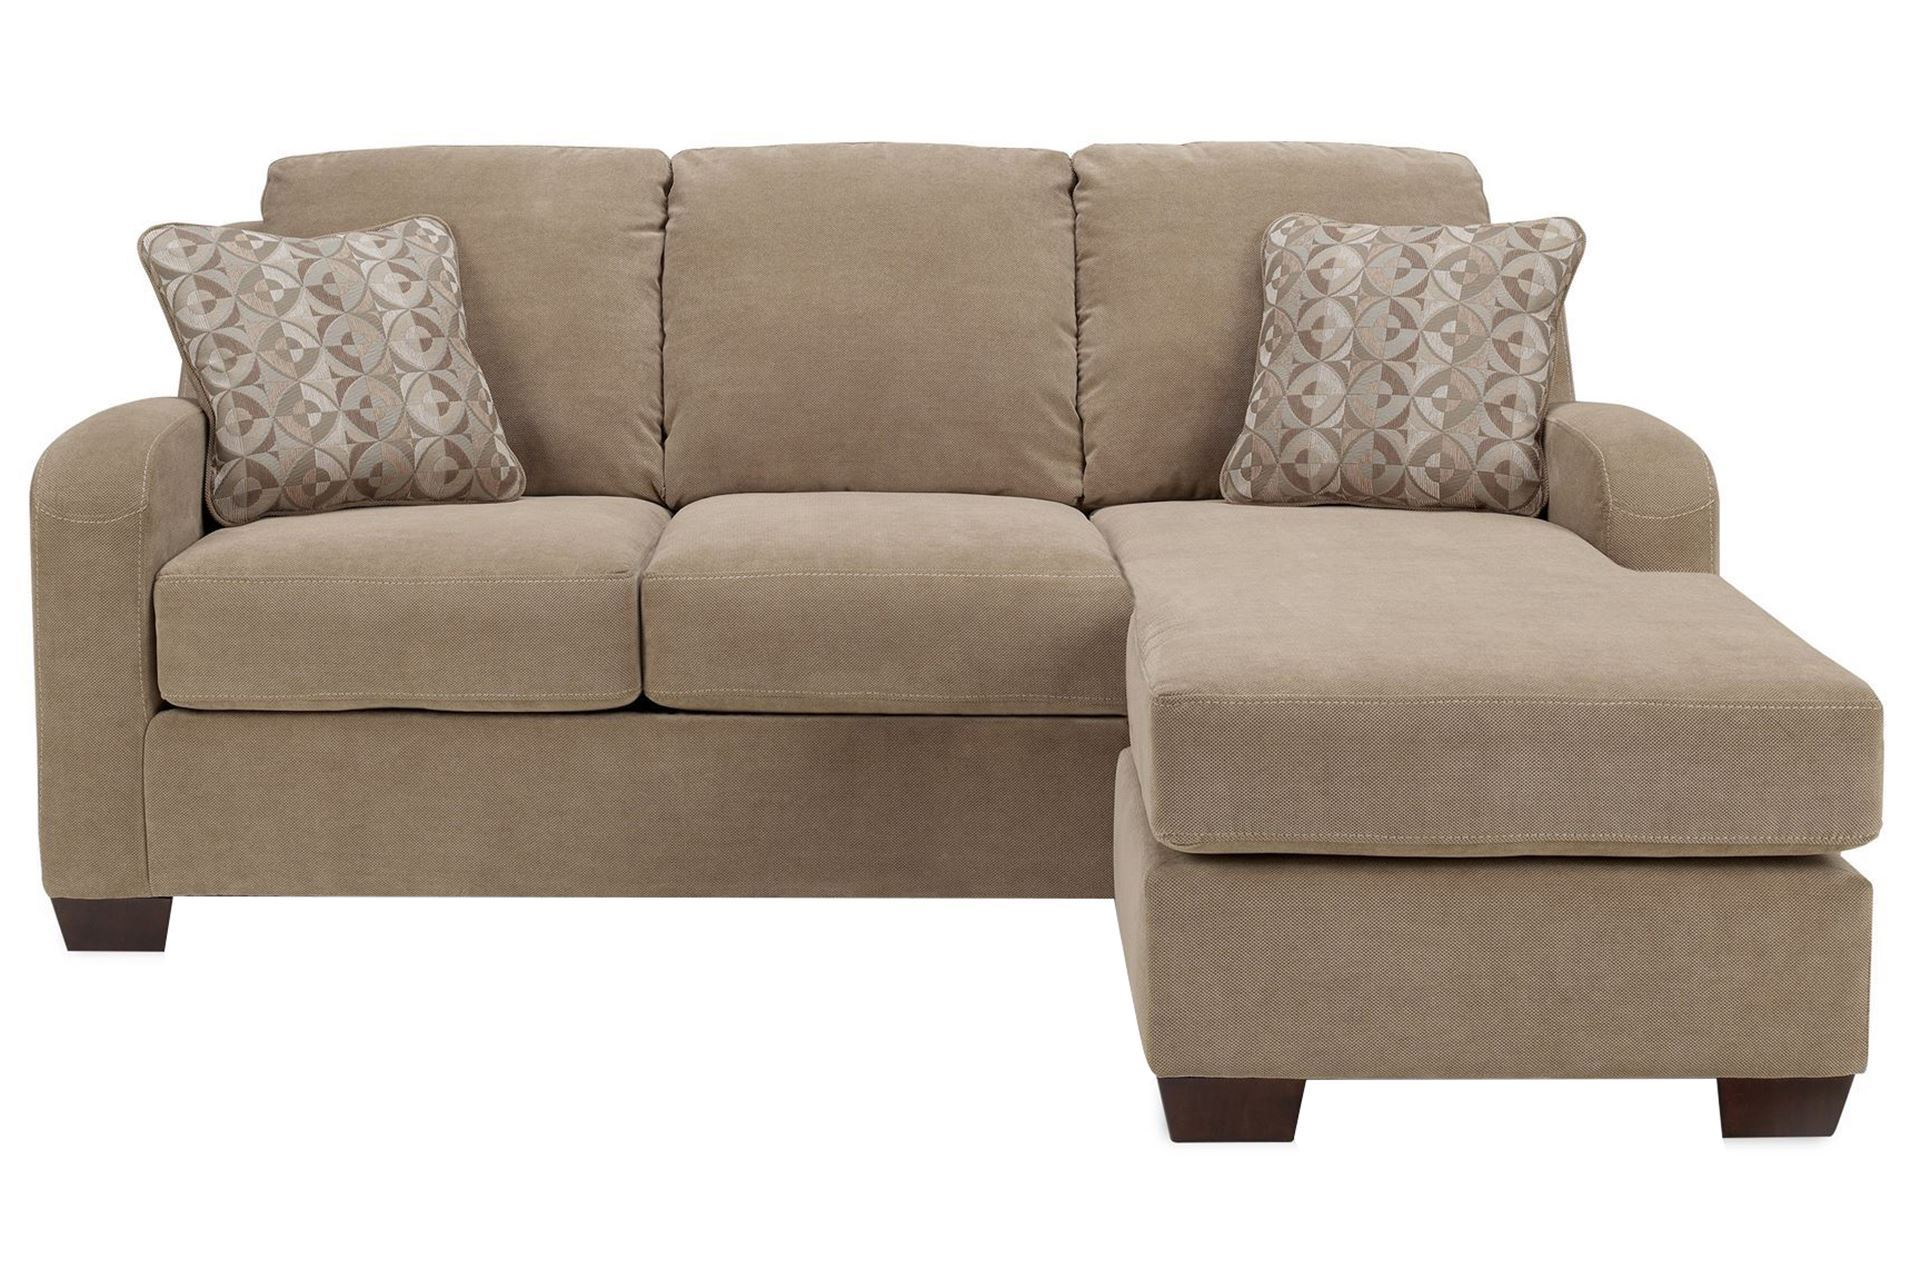 Fine Beeson Fabric Queen Sleeper Chaise Sofa Best Furnitures Ncnpc Chair Design For Home Ncnpcorg